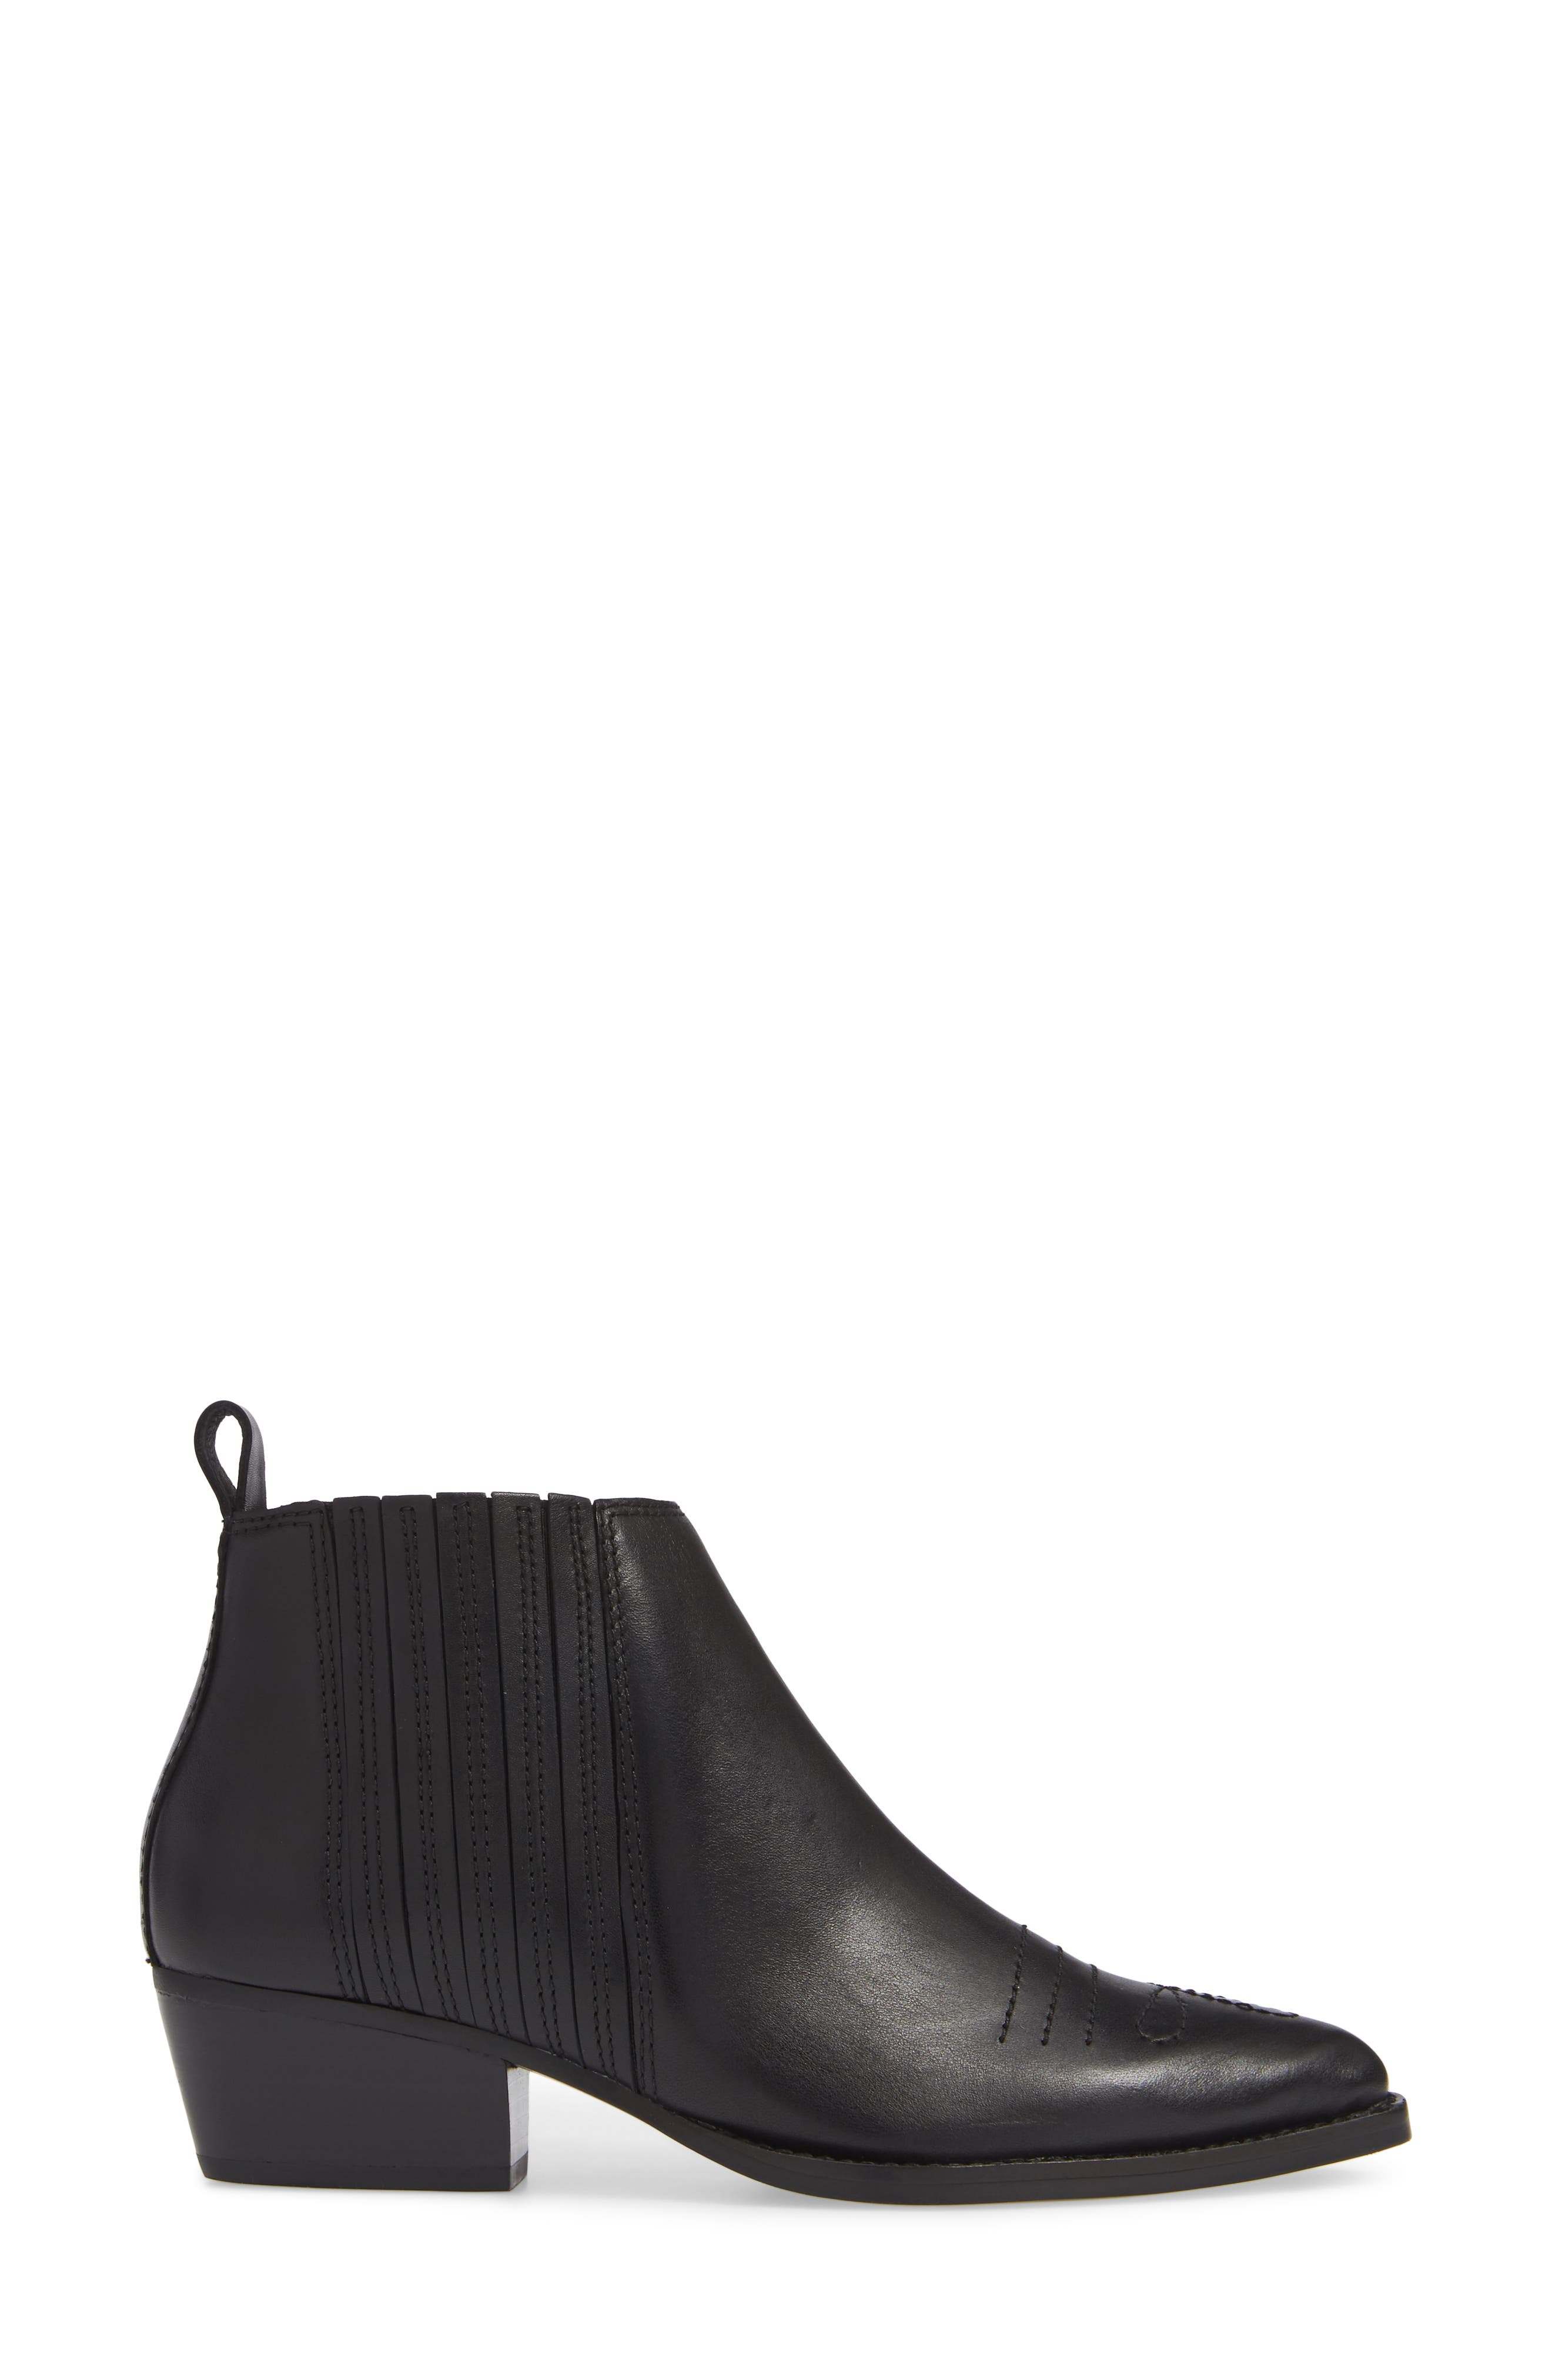 Texas Bootie,                             Alternate thumbnail 3, color,                             BLACK LEATHER